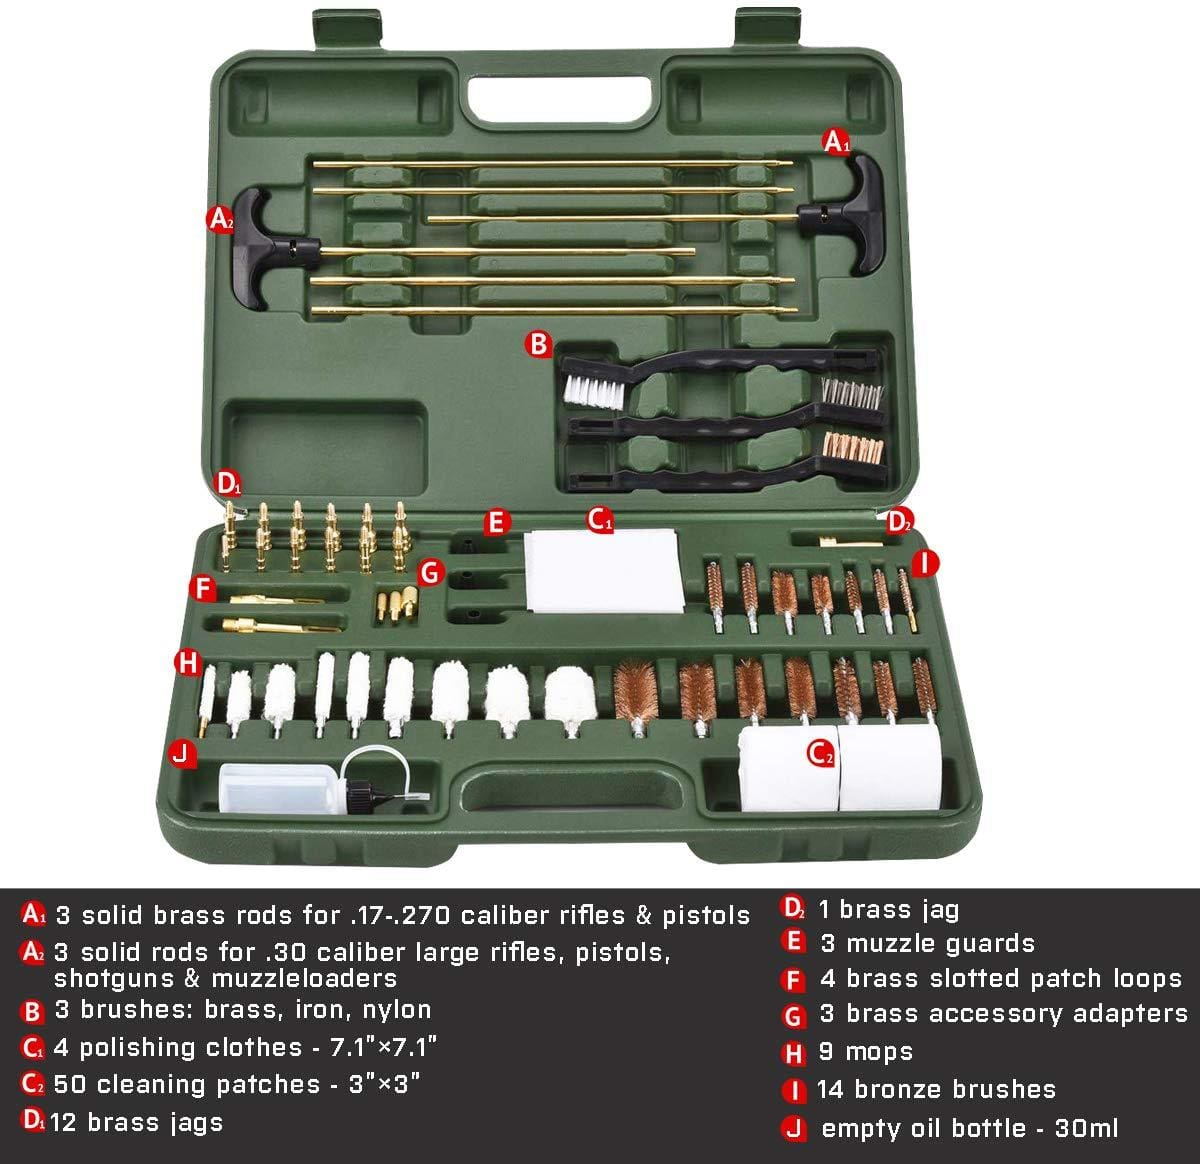 BOW-TAC tactical cleaning kits - Green universal gun cleaning kit - Instruction